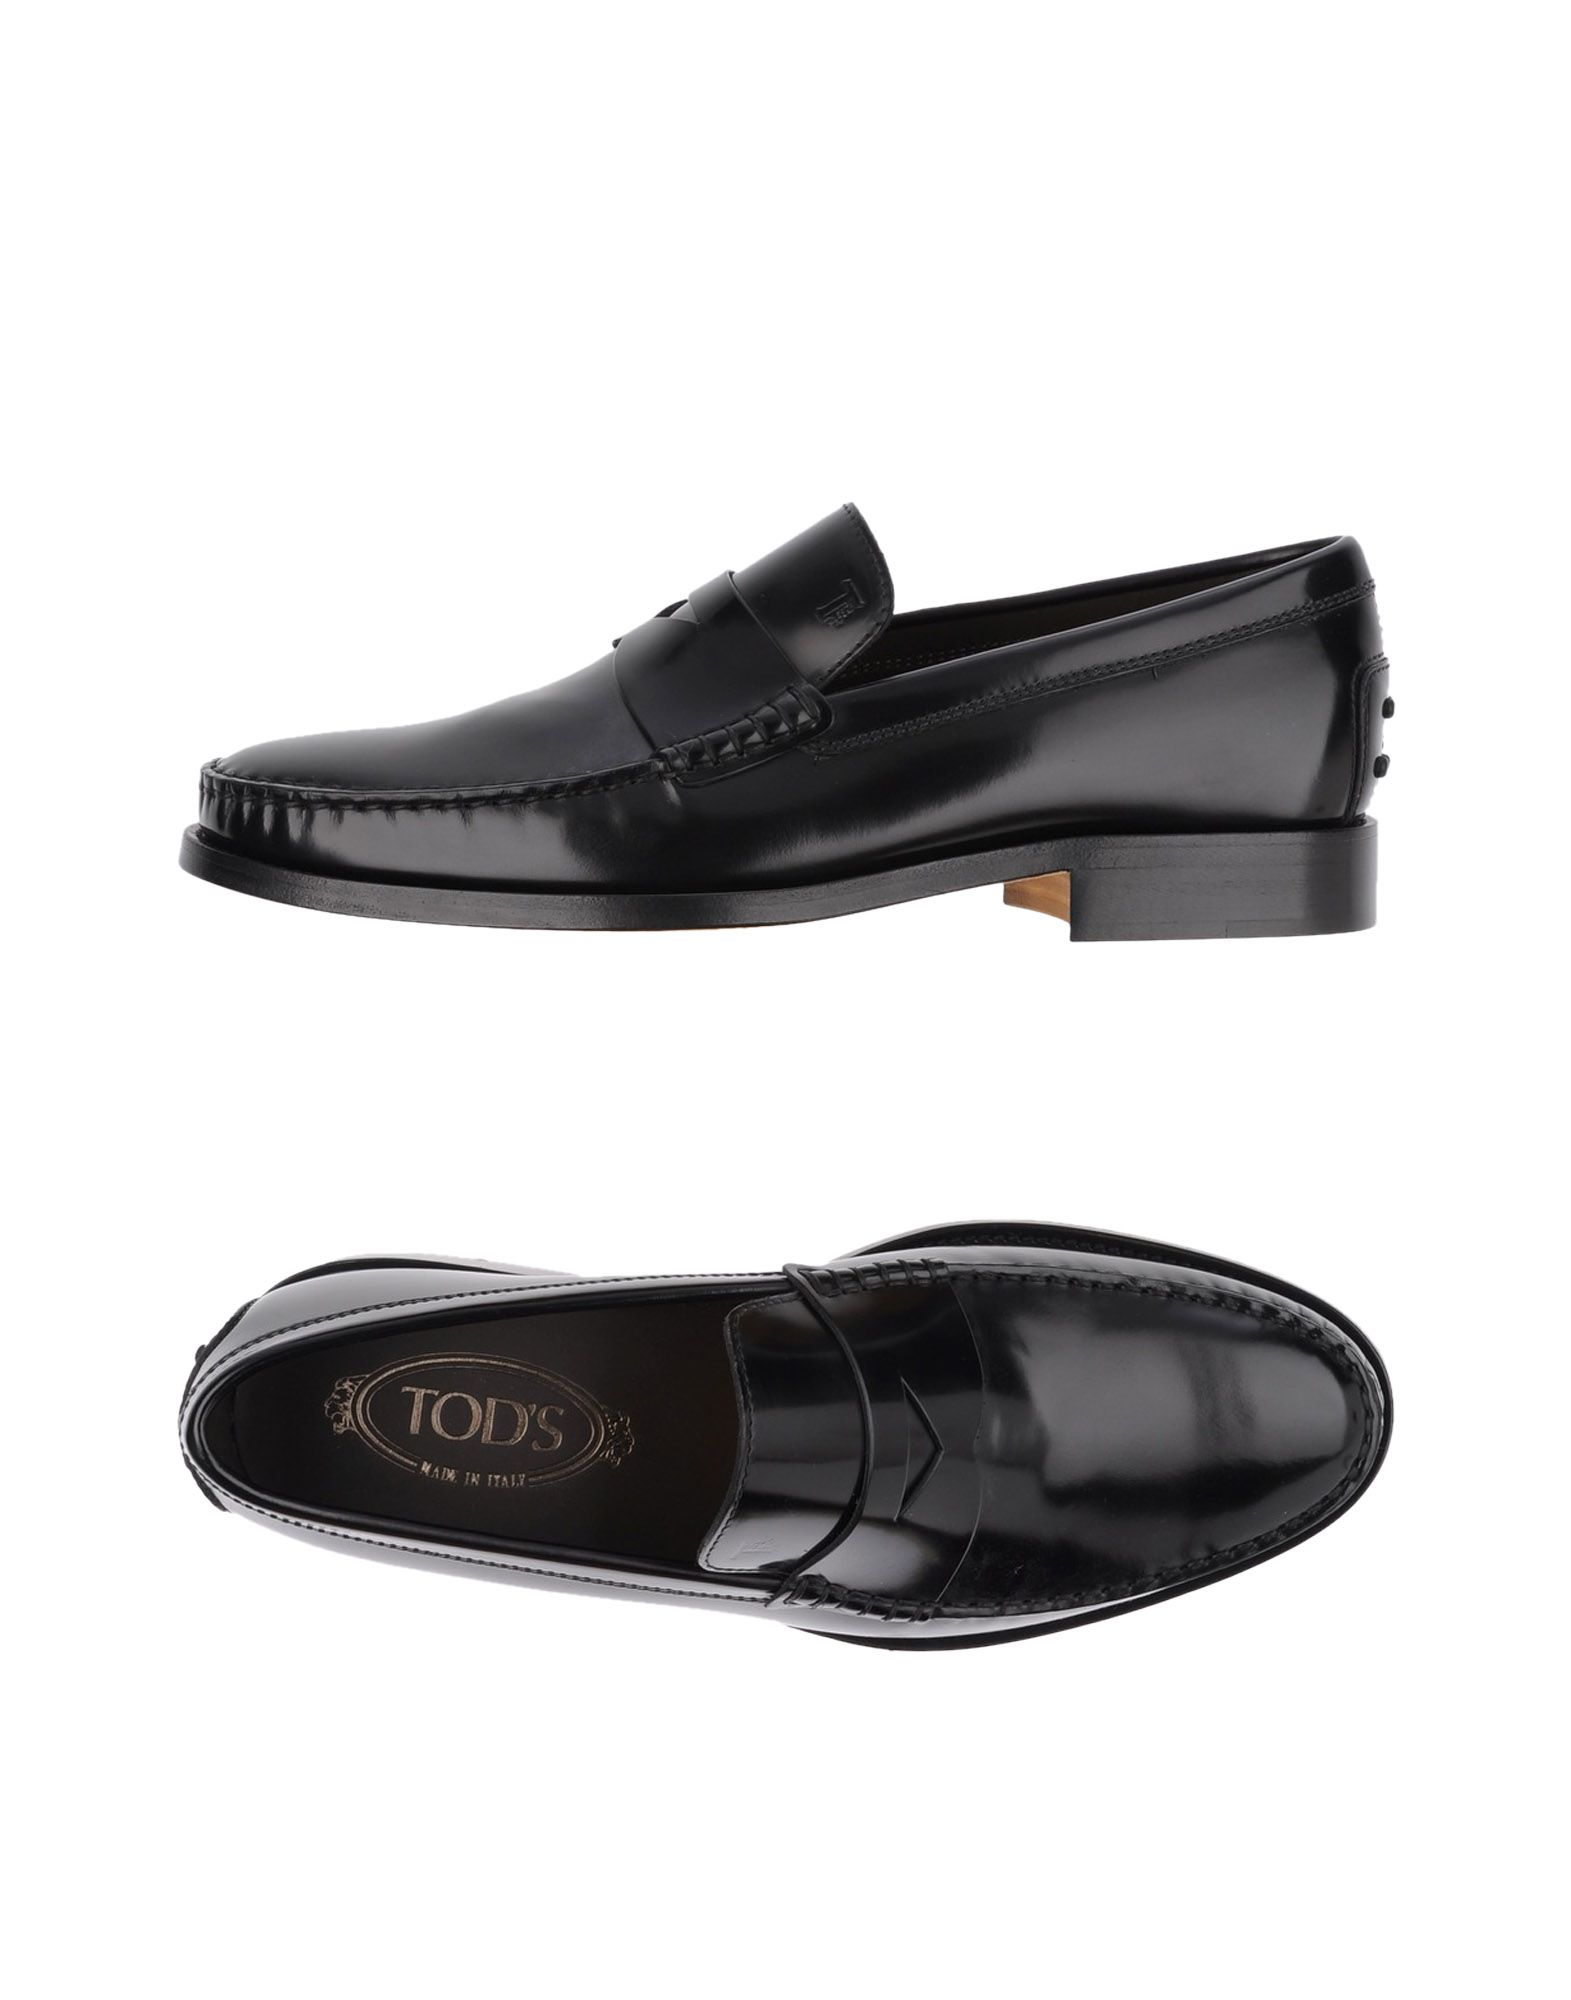 'TOD'S Loafers